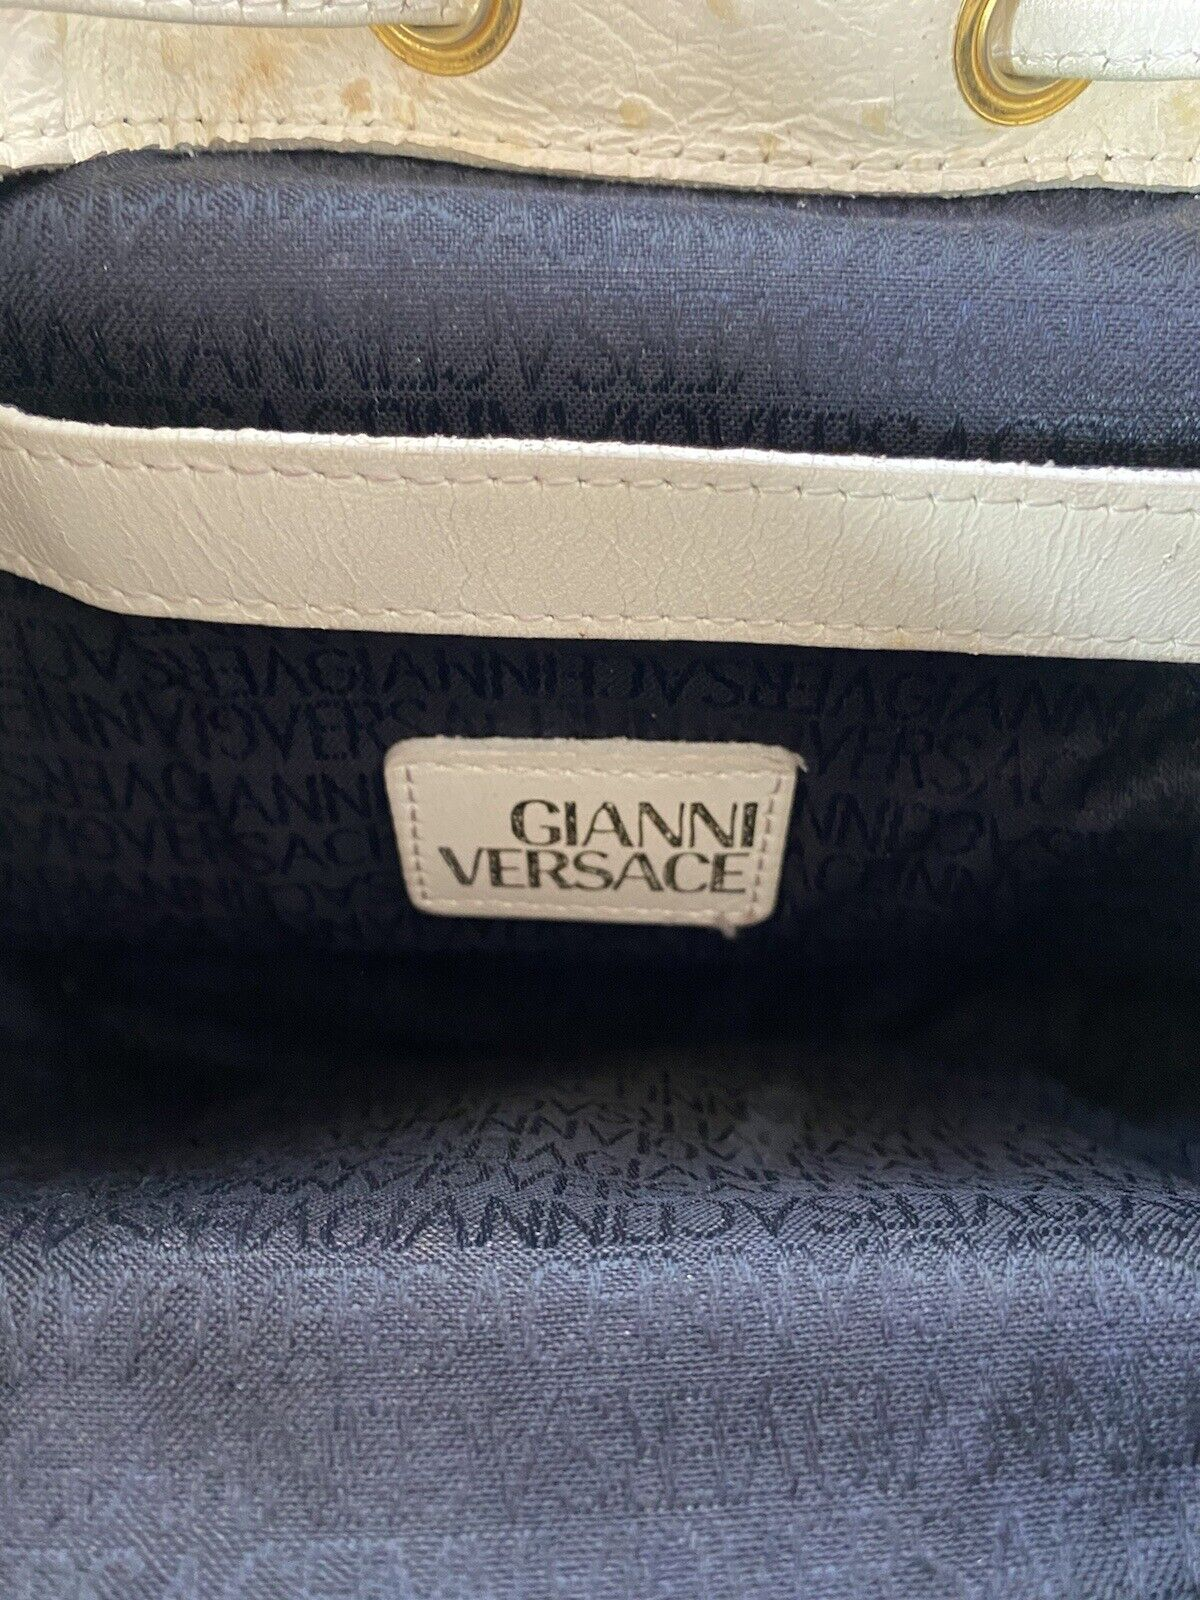 RARE VTG GIANNI VERSACE 90S WHITE OSTRICH BACKPACK - image 11